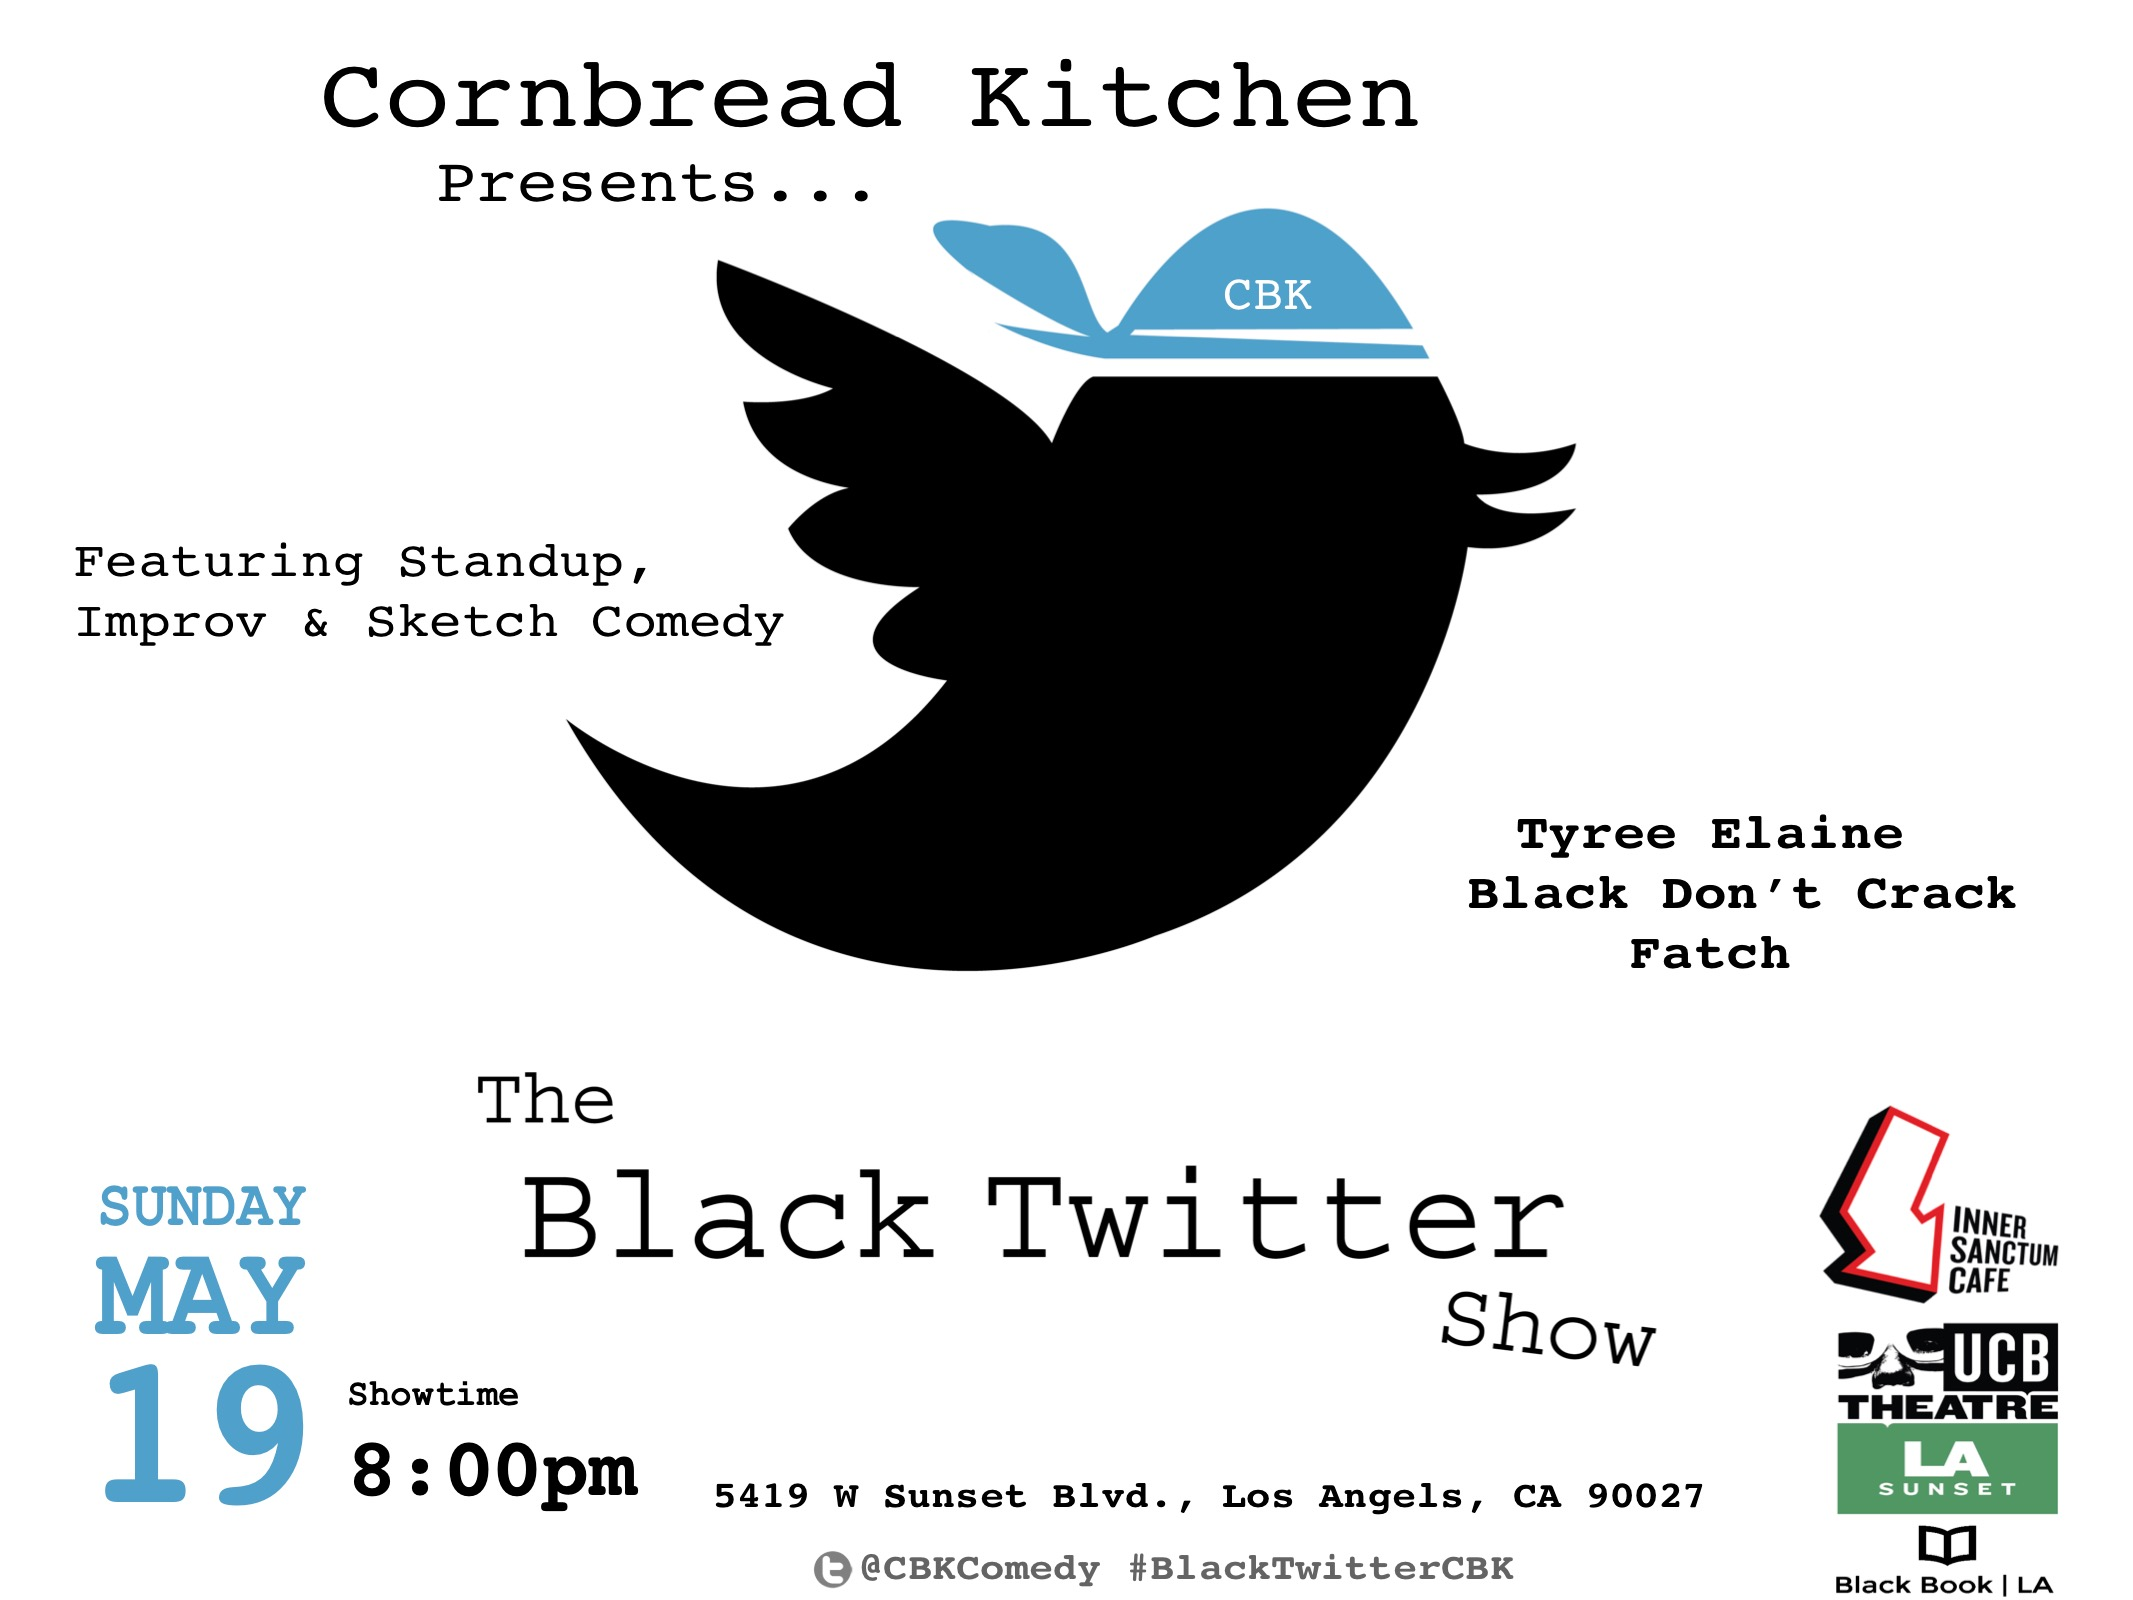 BLACK TWITTER SHOW FLYER MAY 19 FLYER (1).jpeg